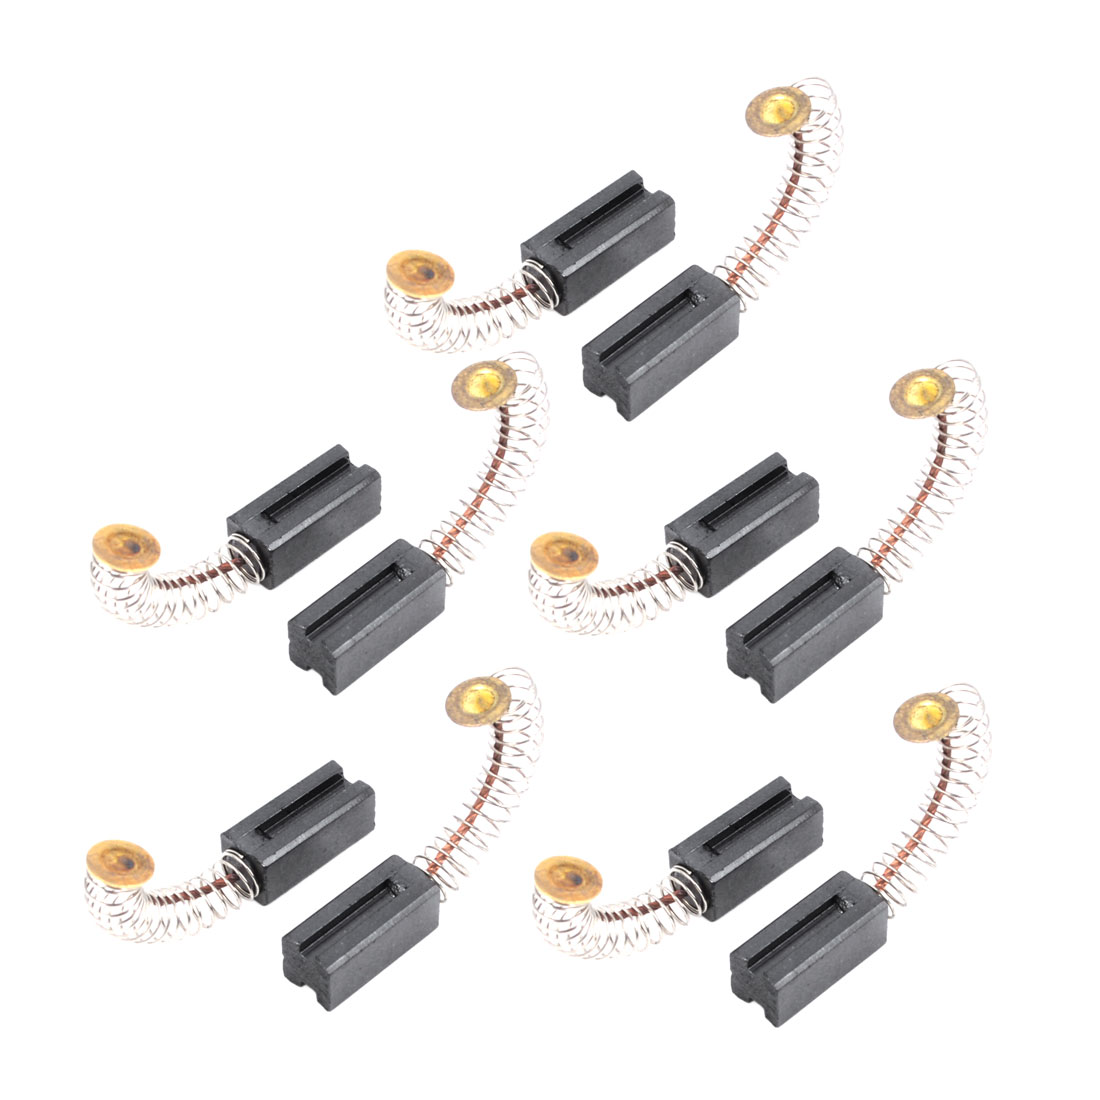 10 Pcs Electric Drill Motor Carbon Brushes 14 x 6 x 6mm